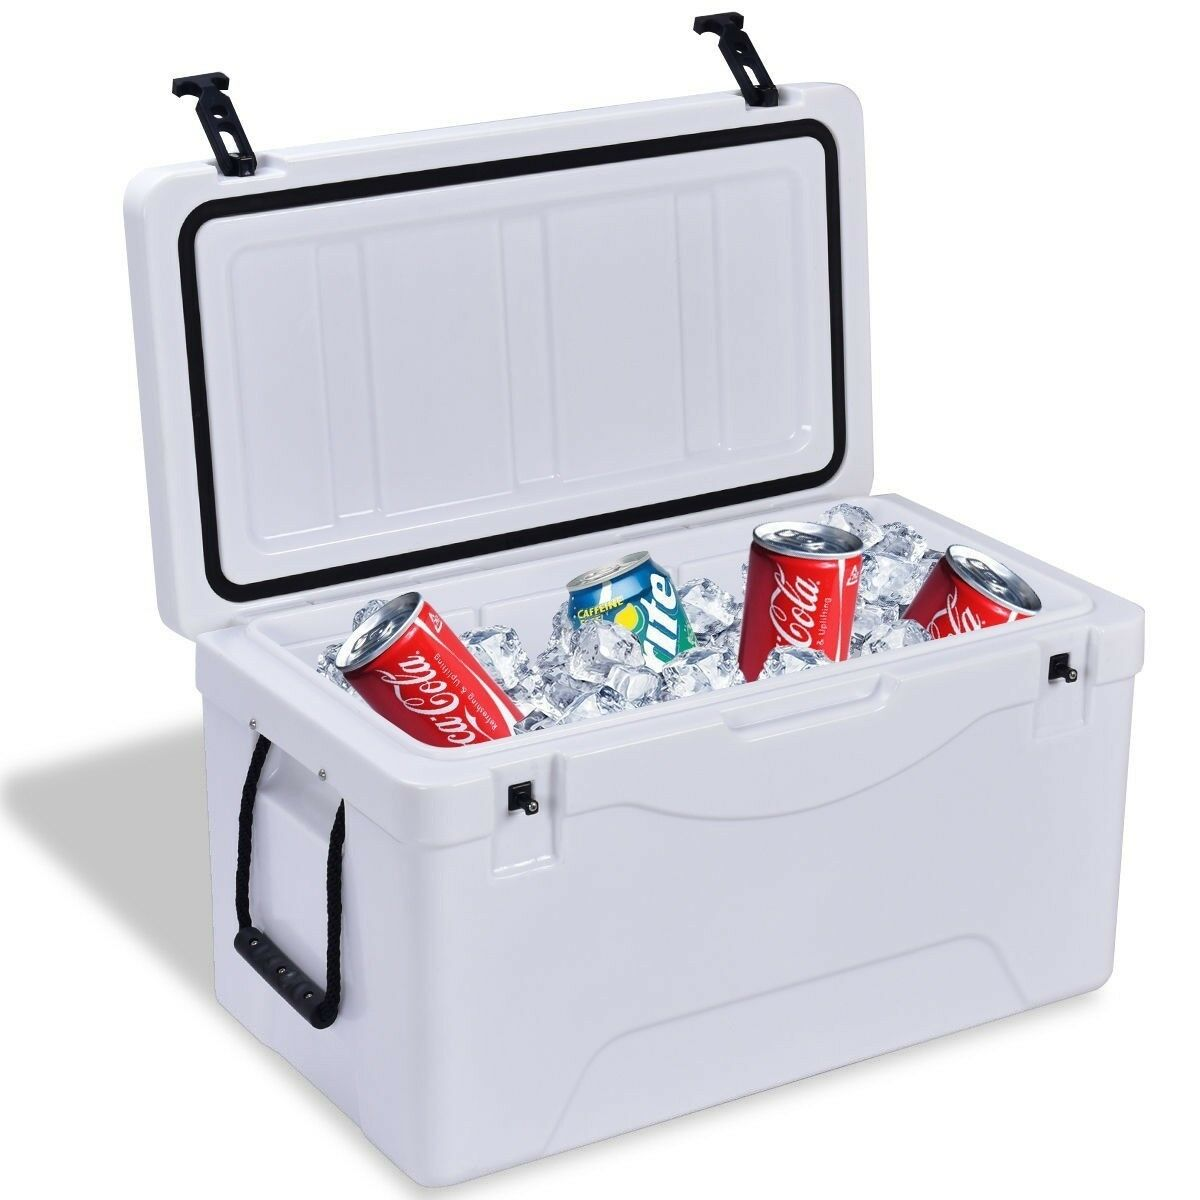 20 32 40 64 Quart Summer Outdoor Isolierter Fishing Hunting Ice Chest Cooler US